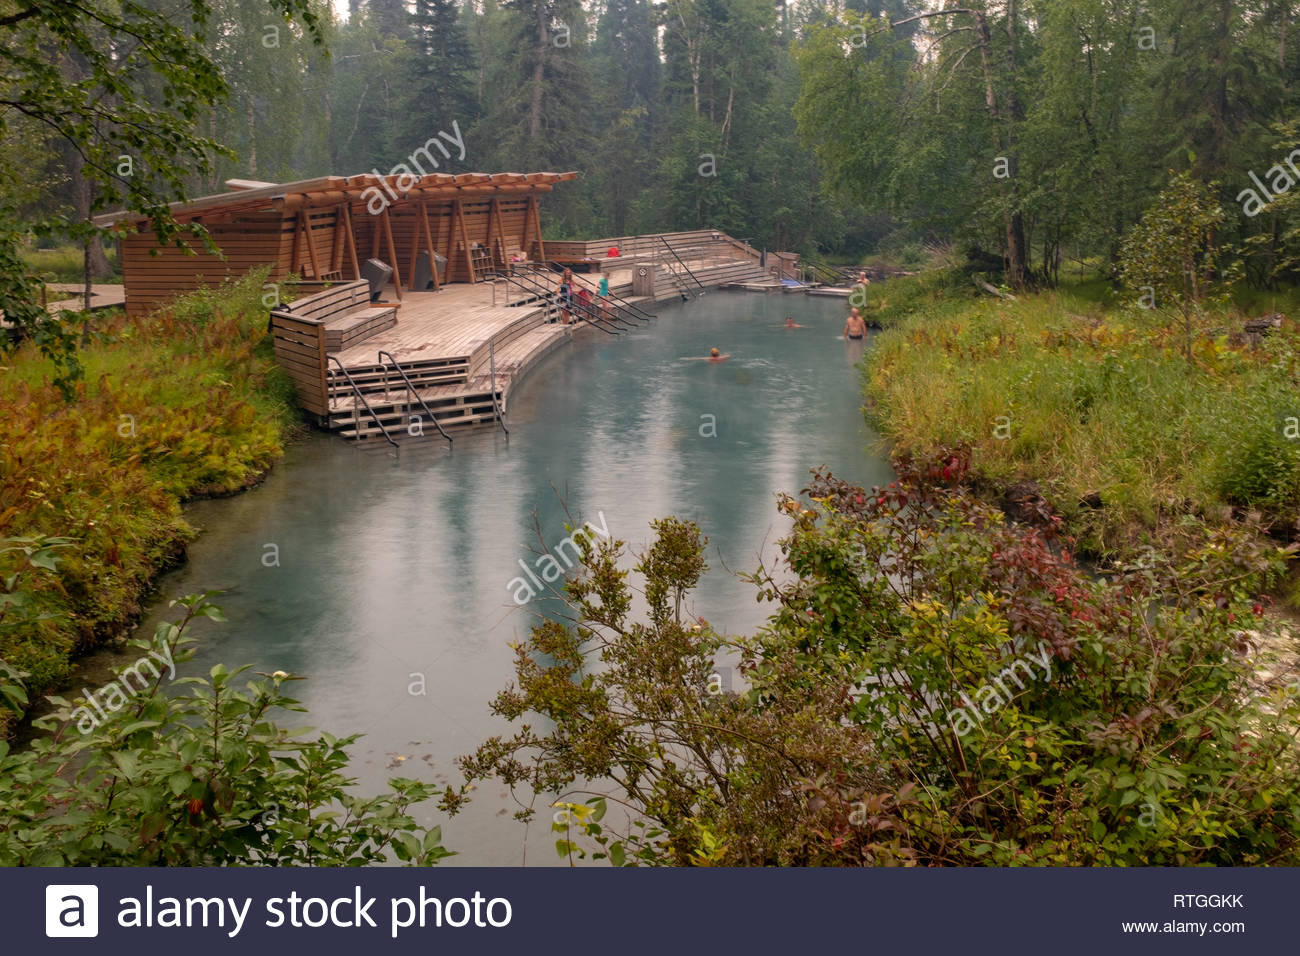 Familes enjoying the therapeutic hot waters of Liard River Hot Springs in British Columbia, Canada, the green of the forest all around. - Stock Image